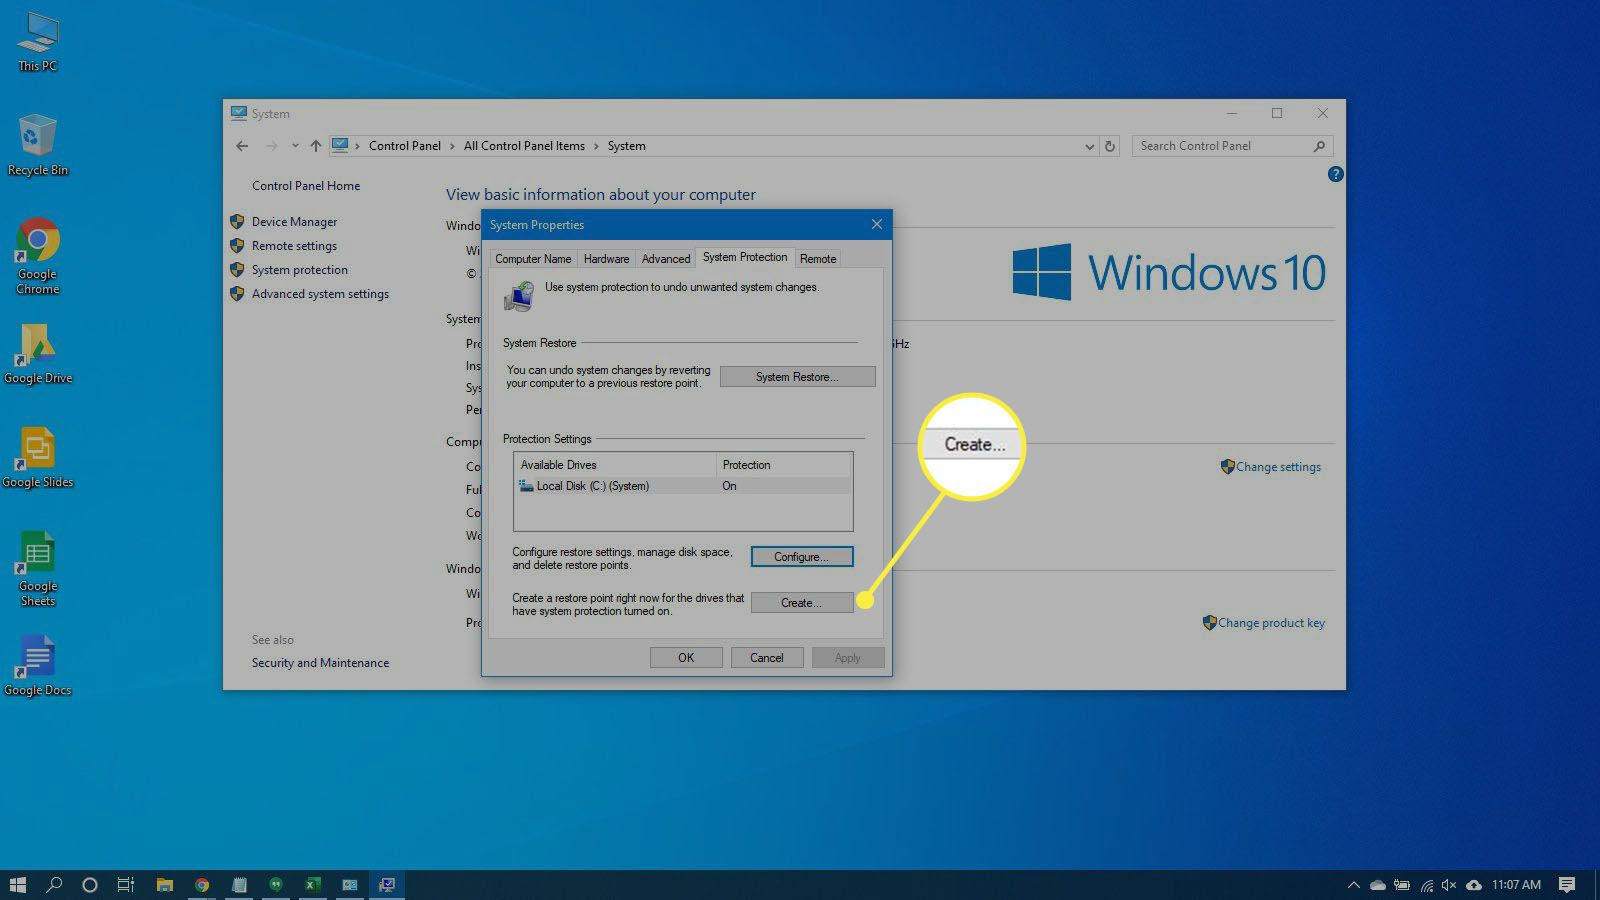 Configuring a restore point in Windows 10.